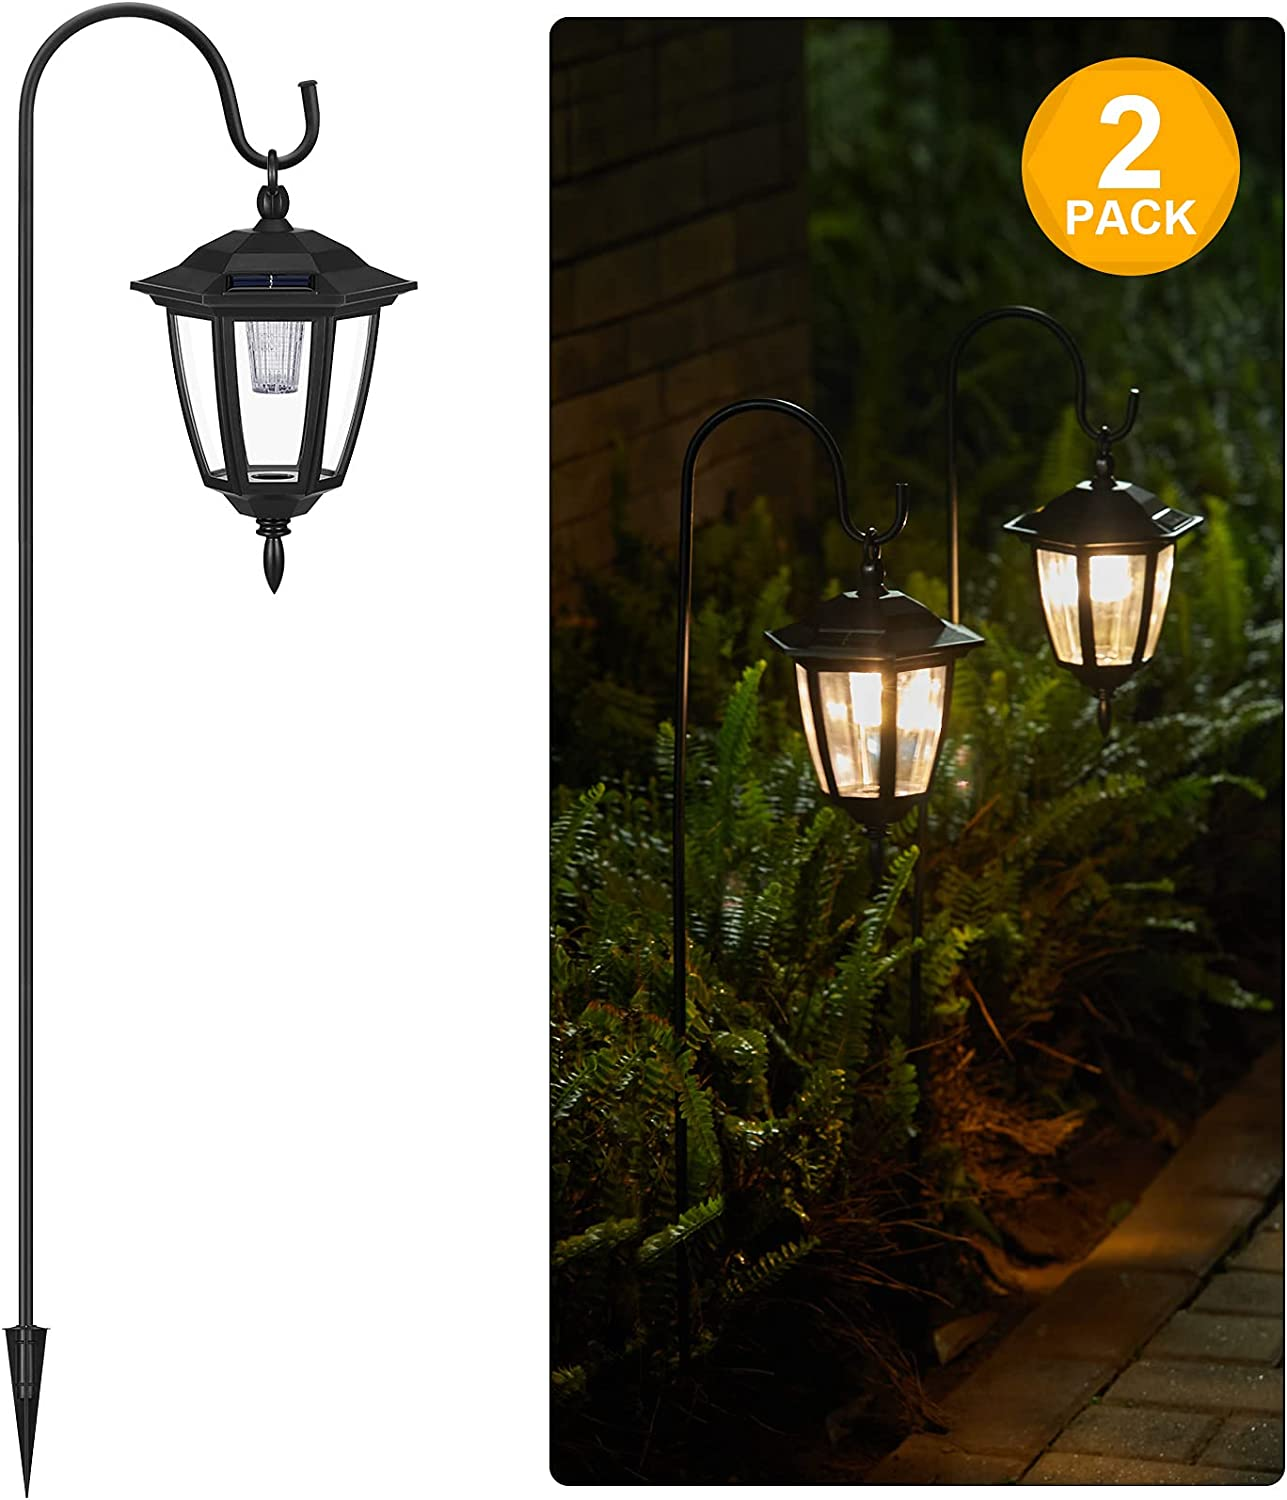 Brightown Solar Lights Outdoor Pathway 2 Pack 38.5 Inch Shepherd Hook with Hanging Lantern Dim to Bright Garden Decor Classic Solar Coach Light for Path Front Porch Outside Yard Patio 3000K Warm White